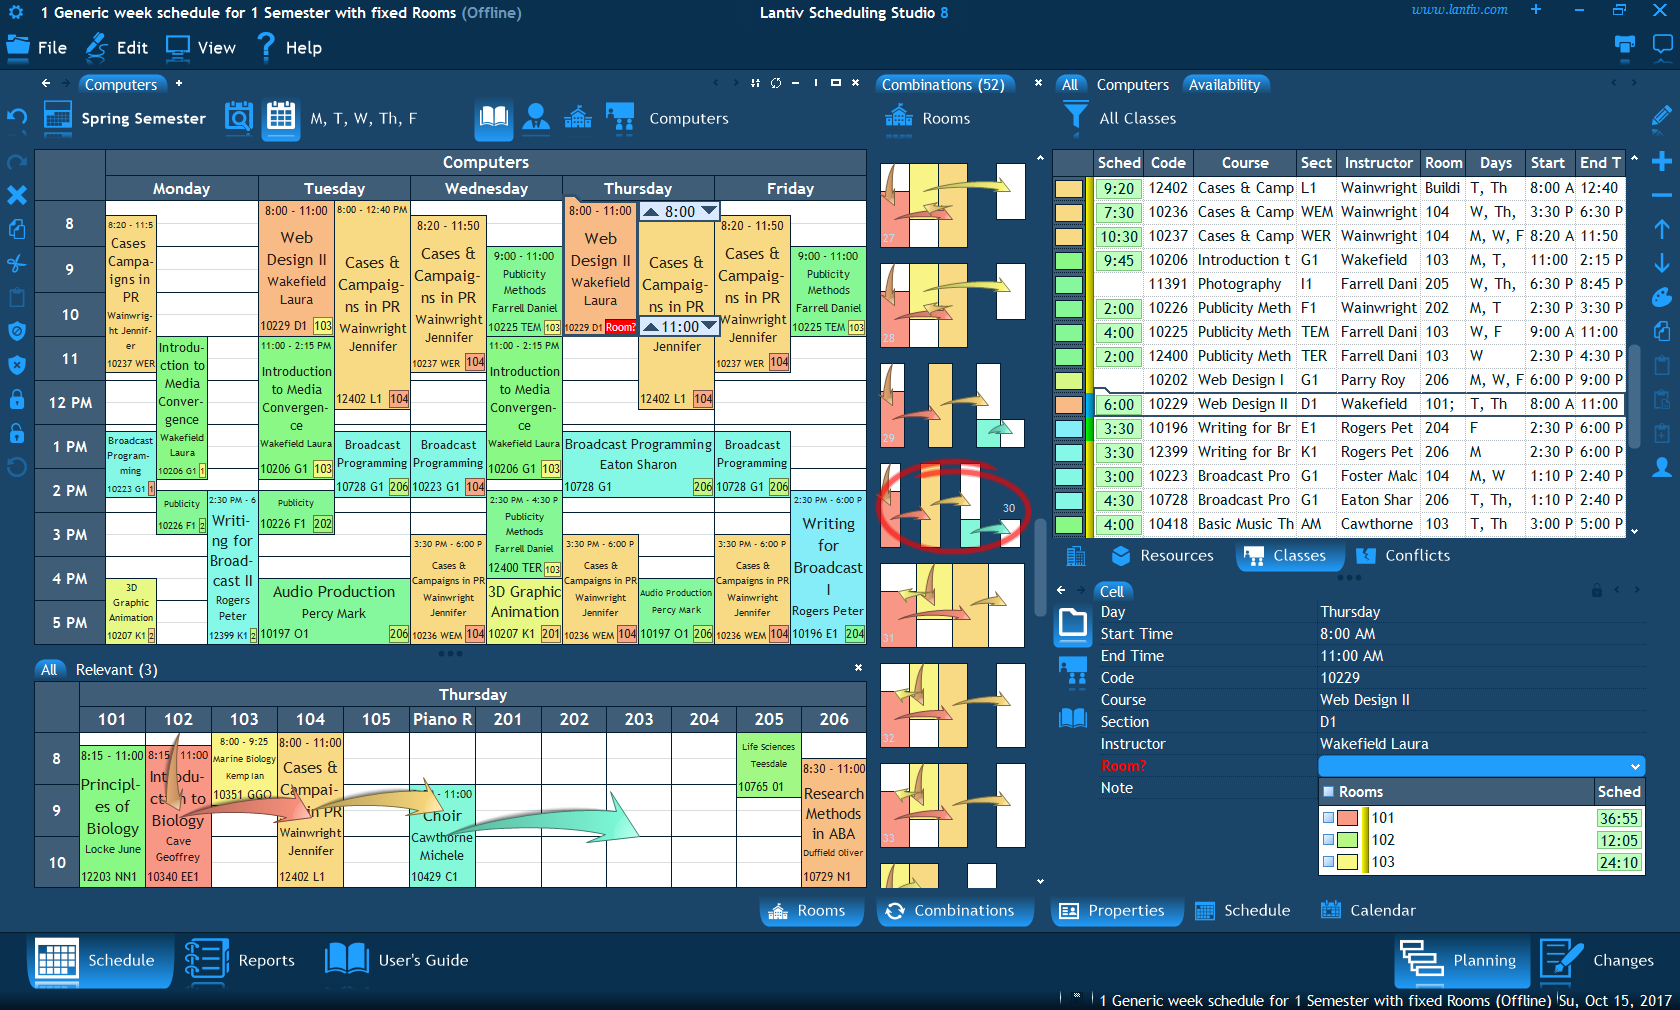 screenshot of university scheduling software combinations to schedule a room for an activity